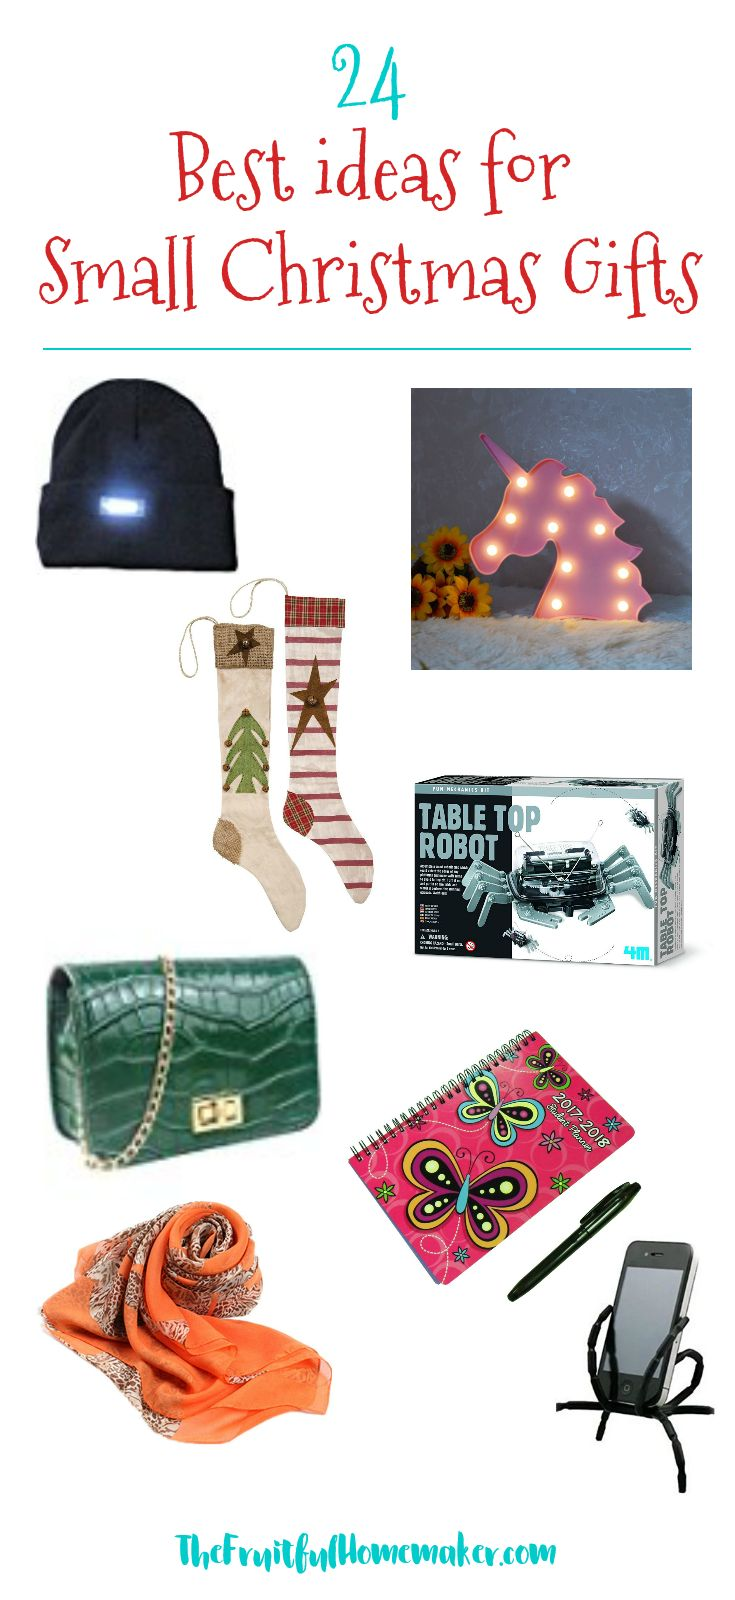 Best Ideas for Small Christmas Gifts. Holiday gift guide for teacher gifts, stocking fillers, Secret Santa and other small gifts you need to by this Christmas.